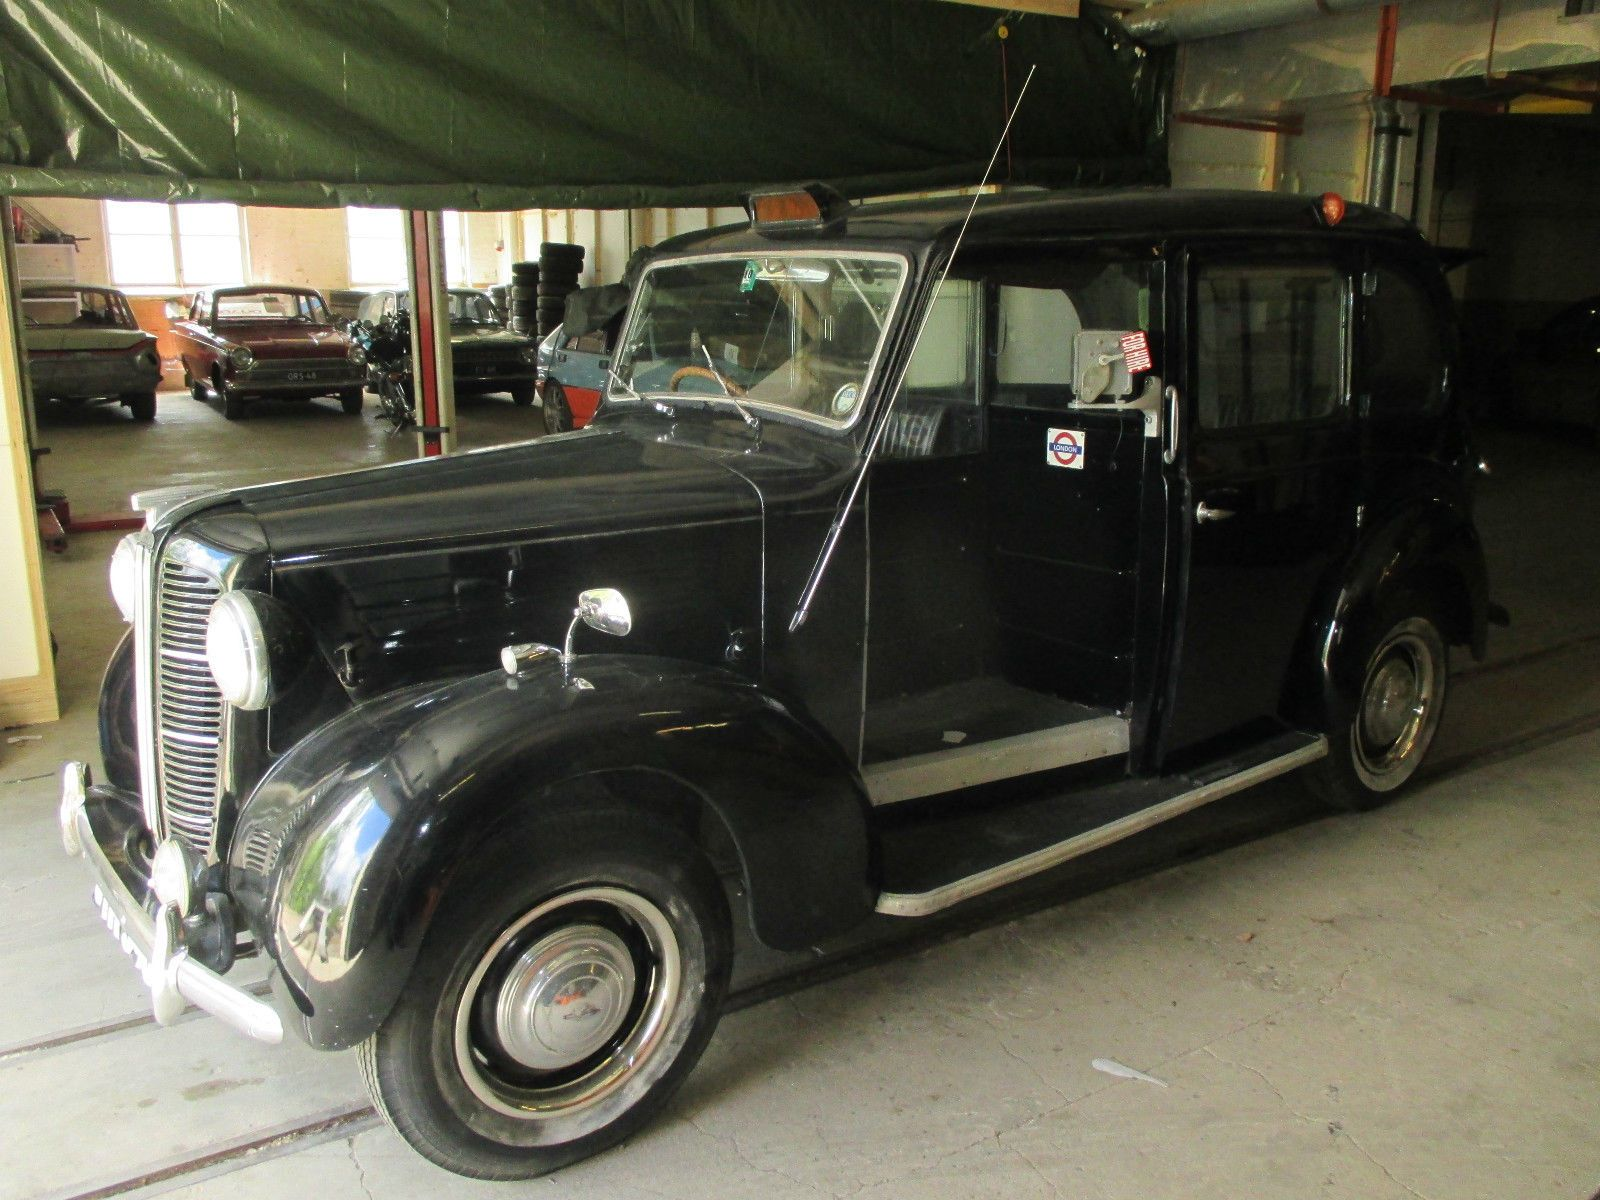 Rare example of a 1958 Austin FX3 D Metropolitan London